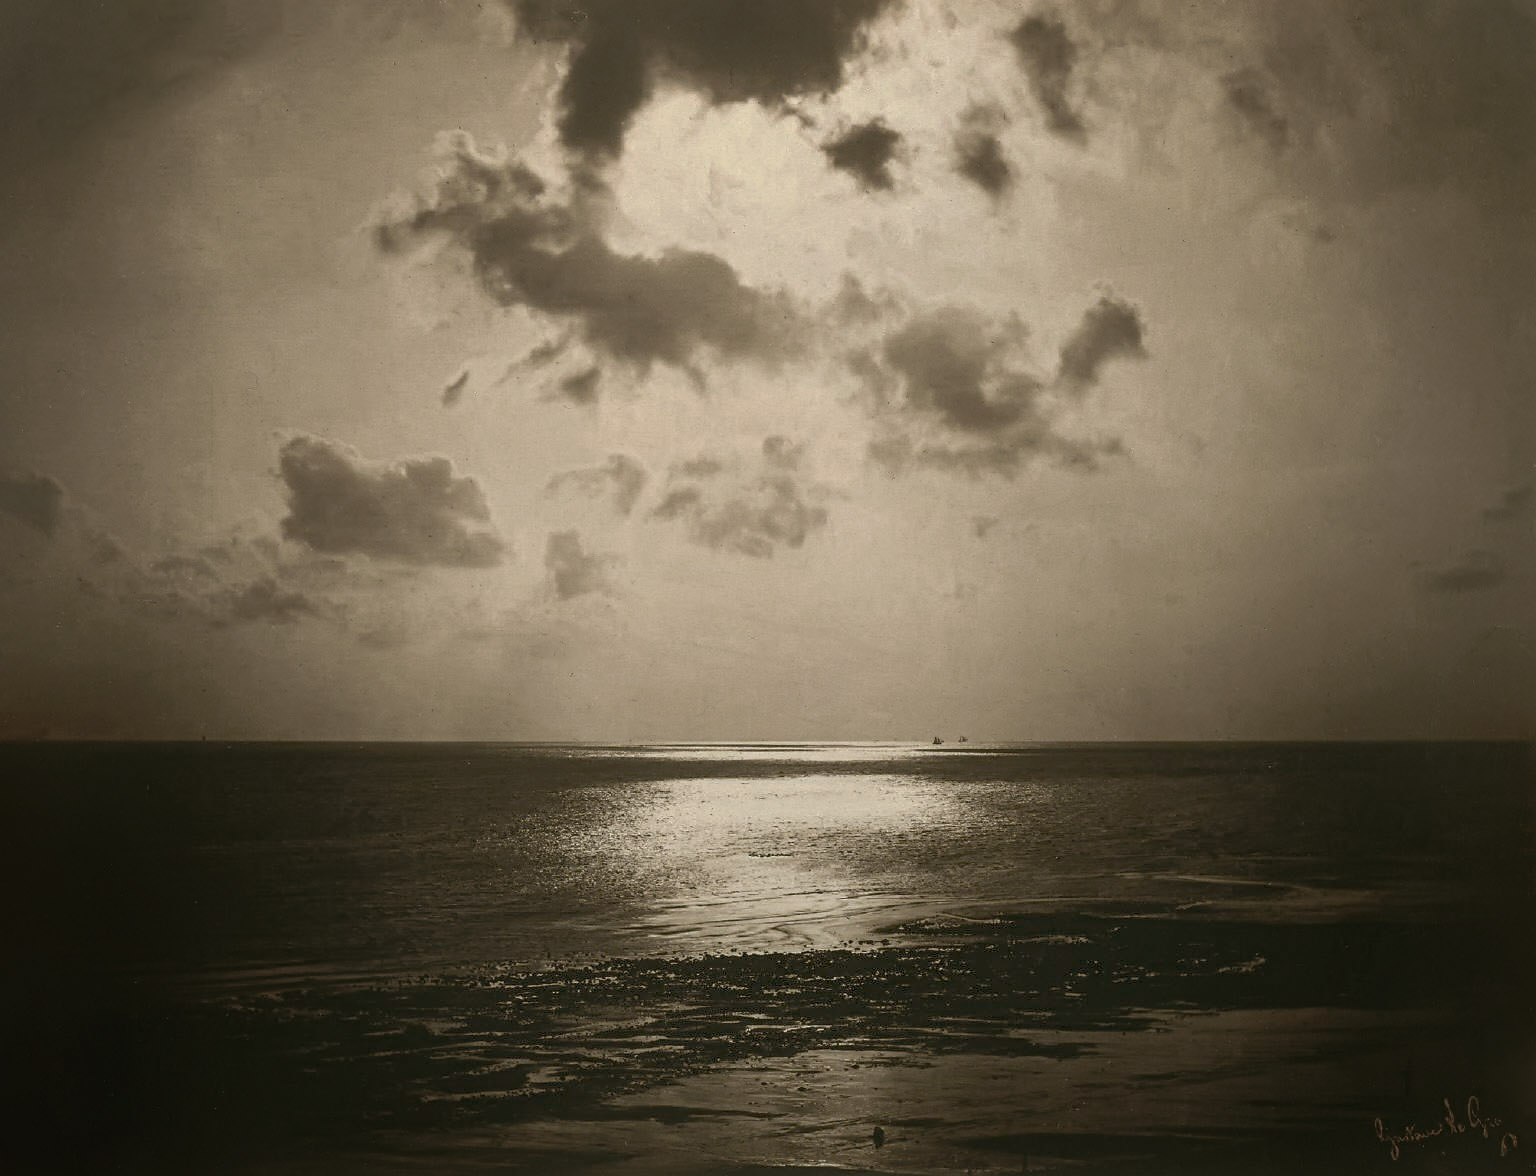 Masters of photography gustave le gray on landscape - Le photograph ...